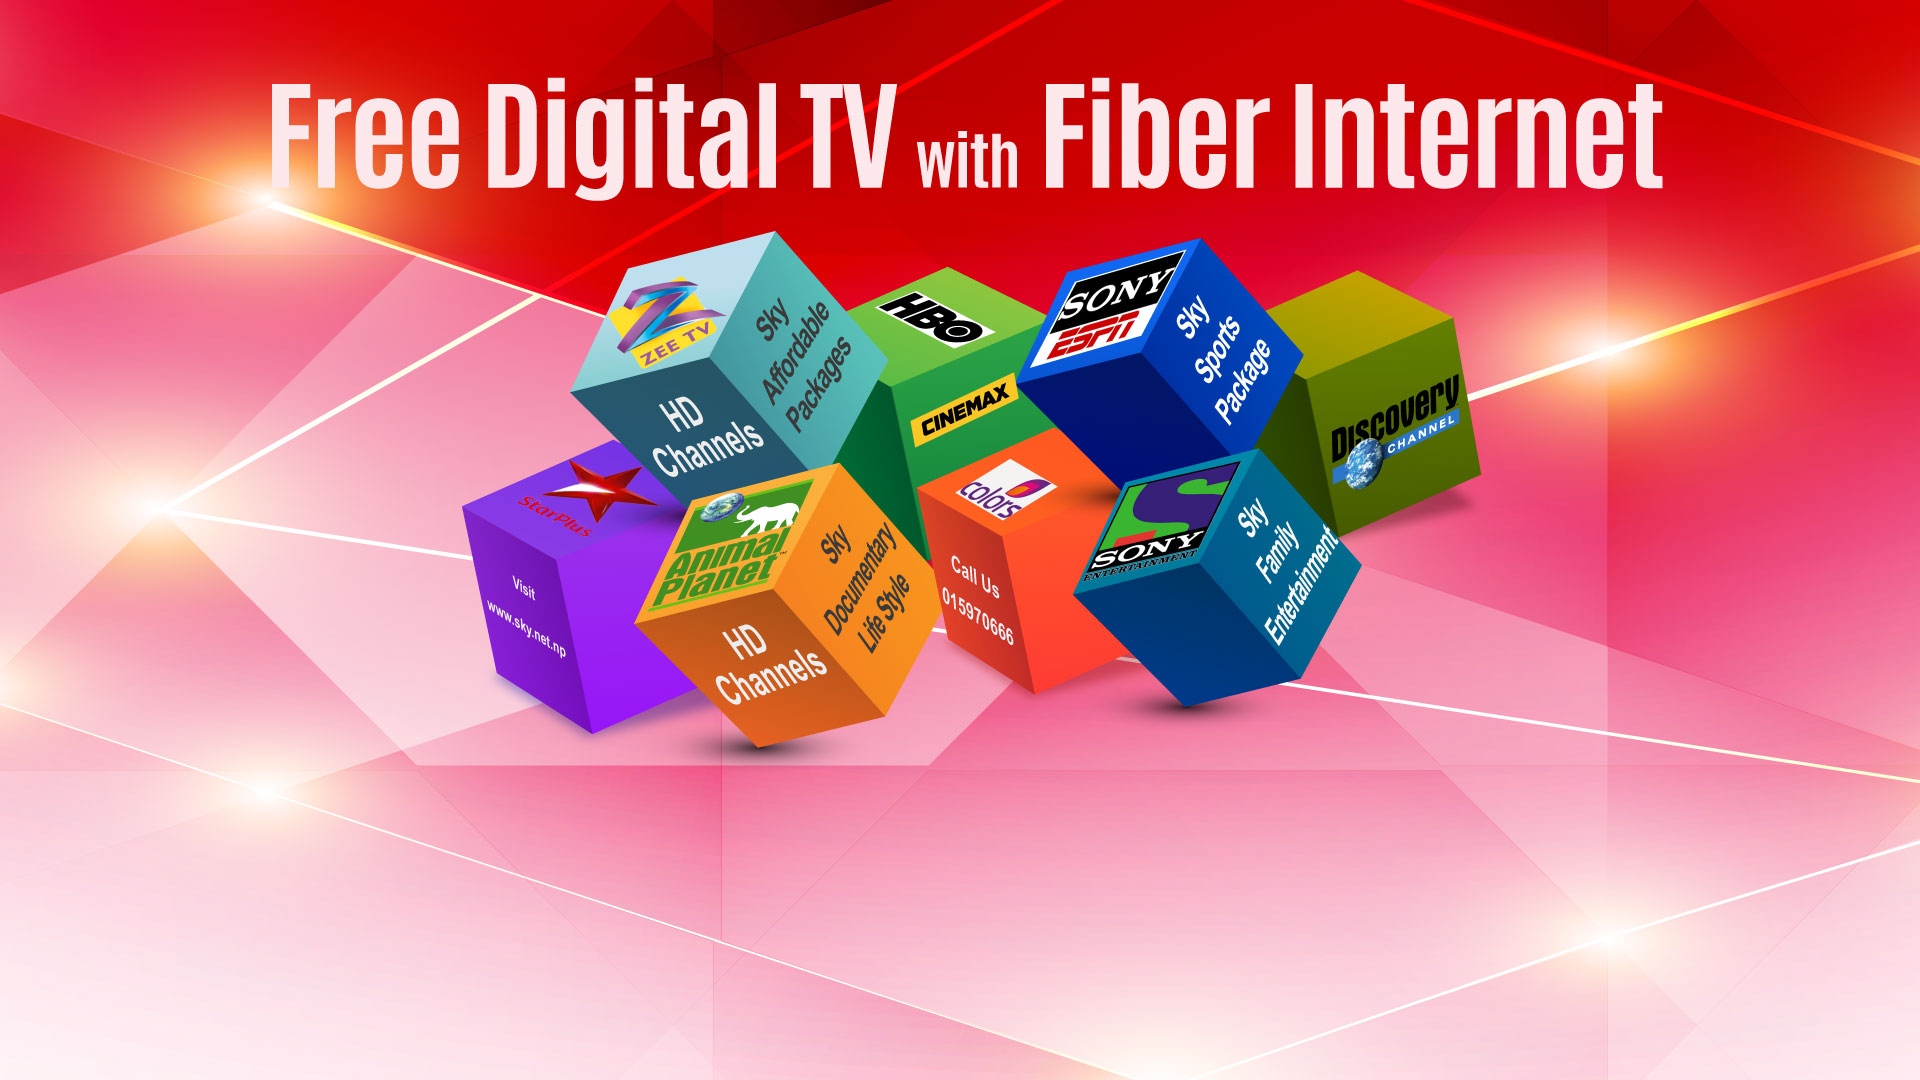 Free DTV with Fiber Internet